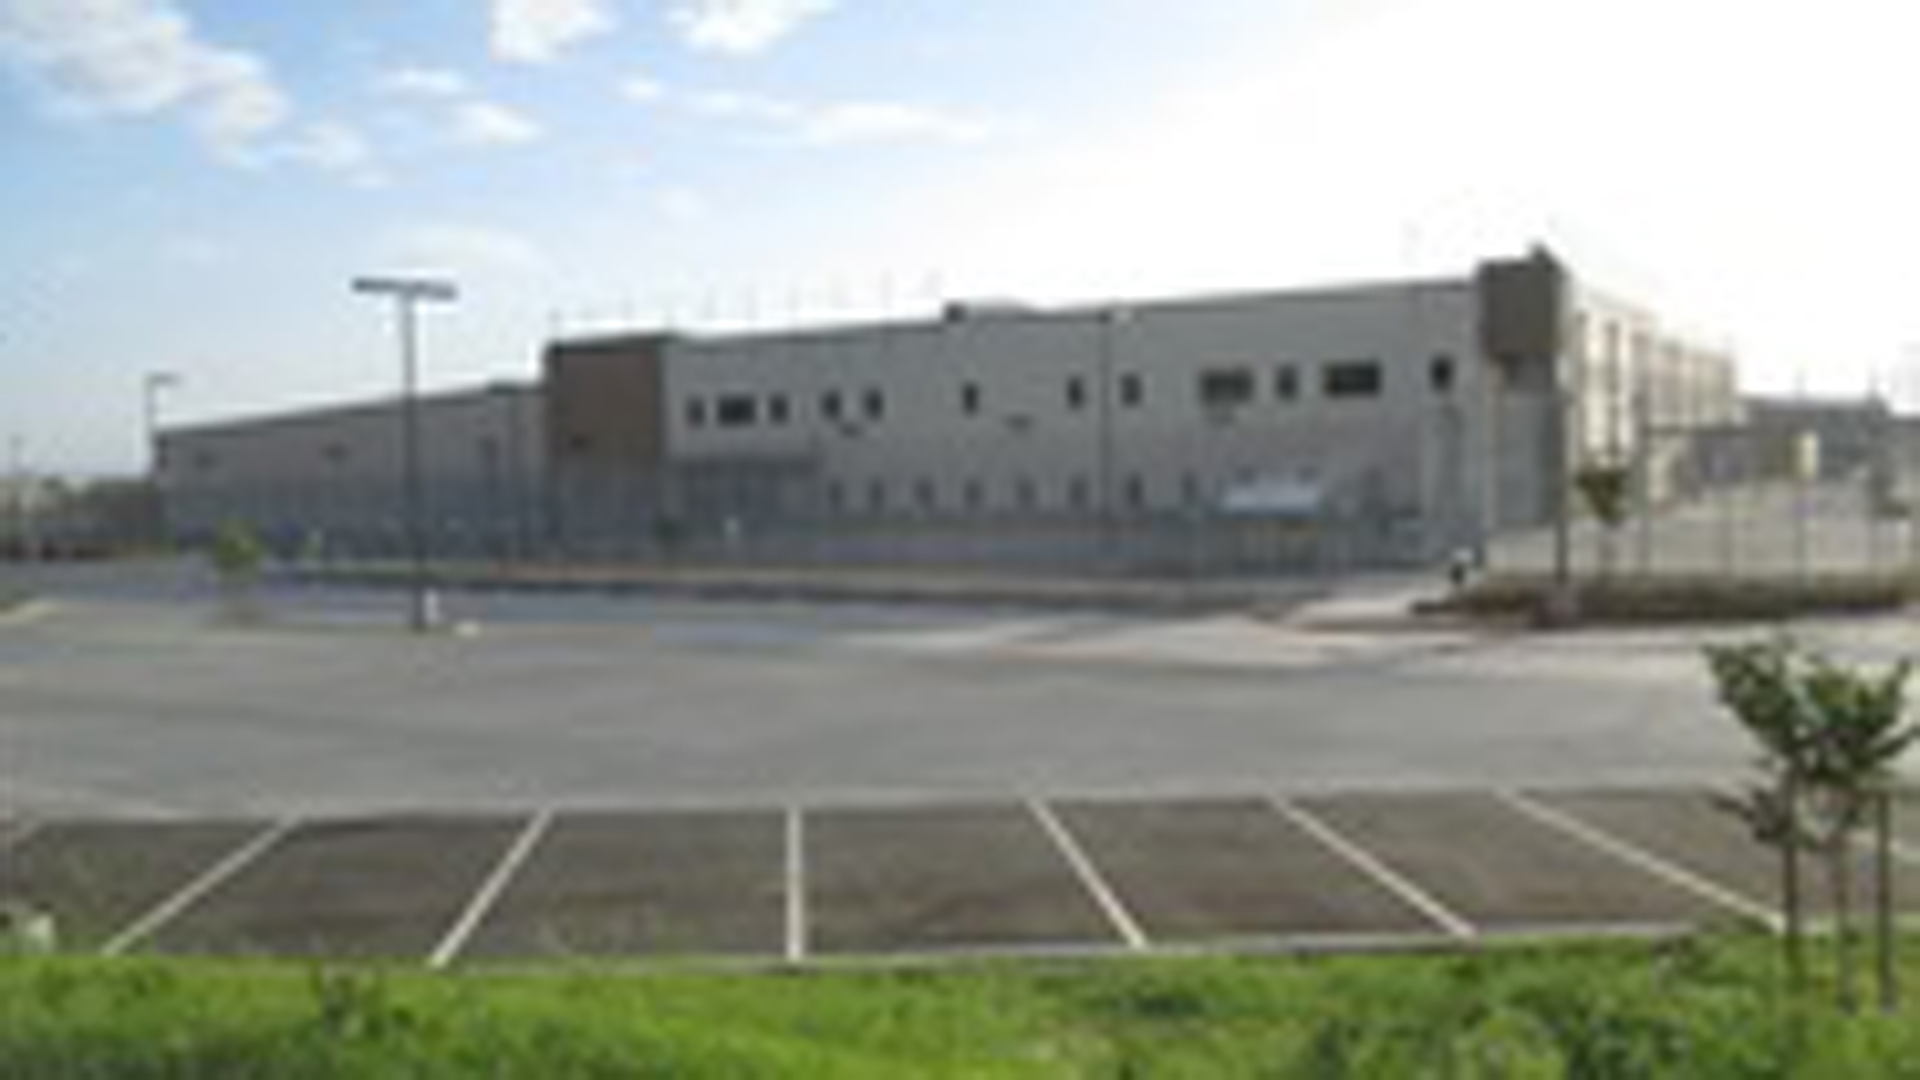 The Otay Mesa Detention Center is seen in an undated photo posted to the website of the County of San Diego Planning and Development Services.